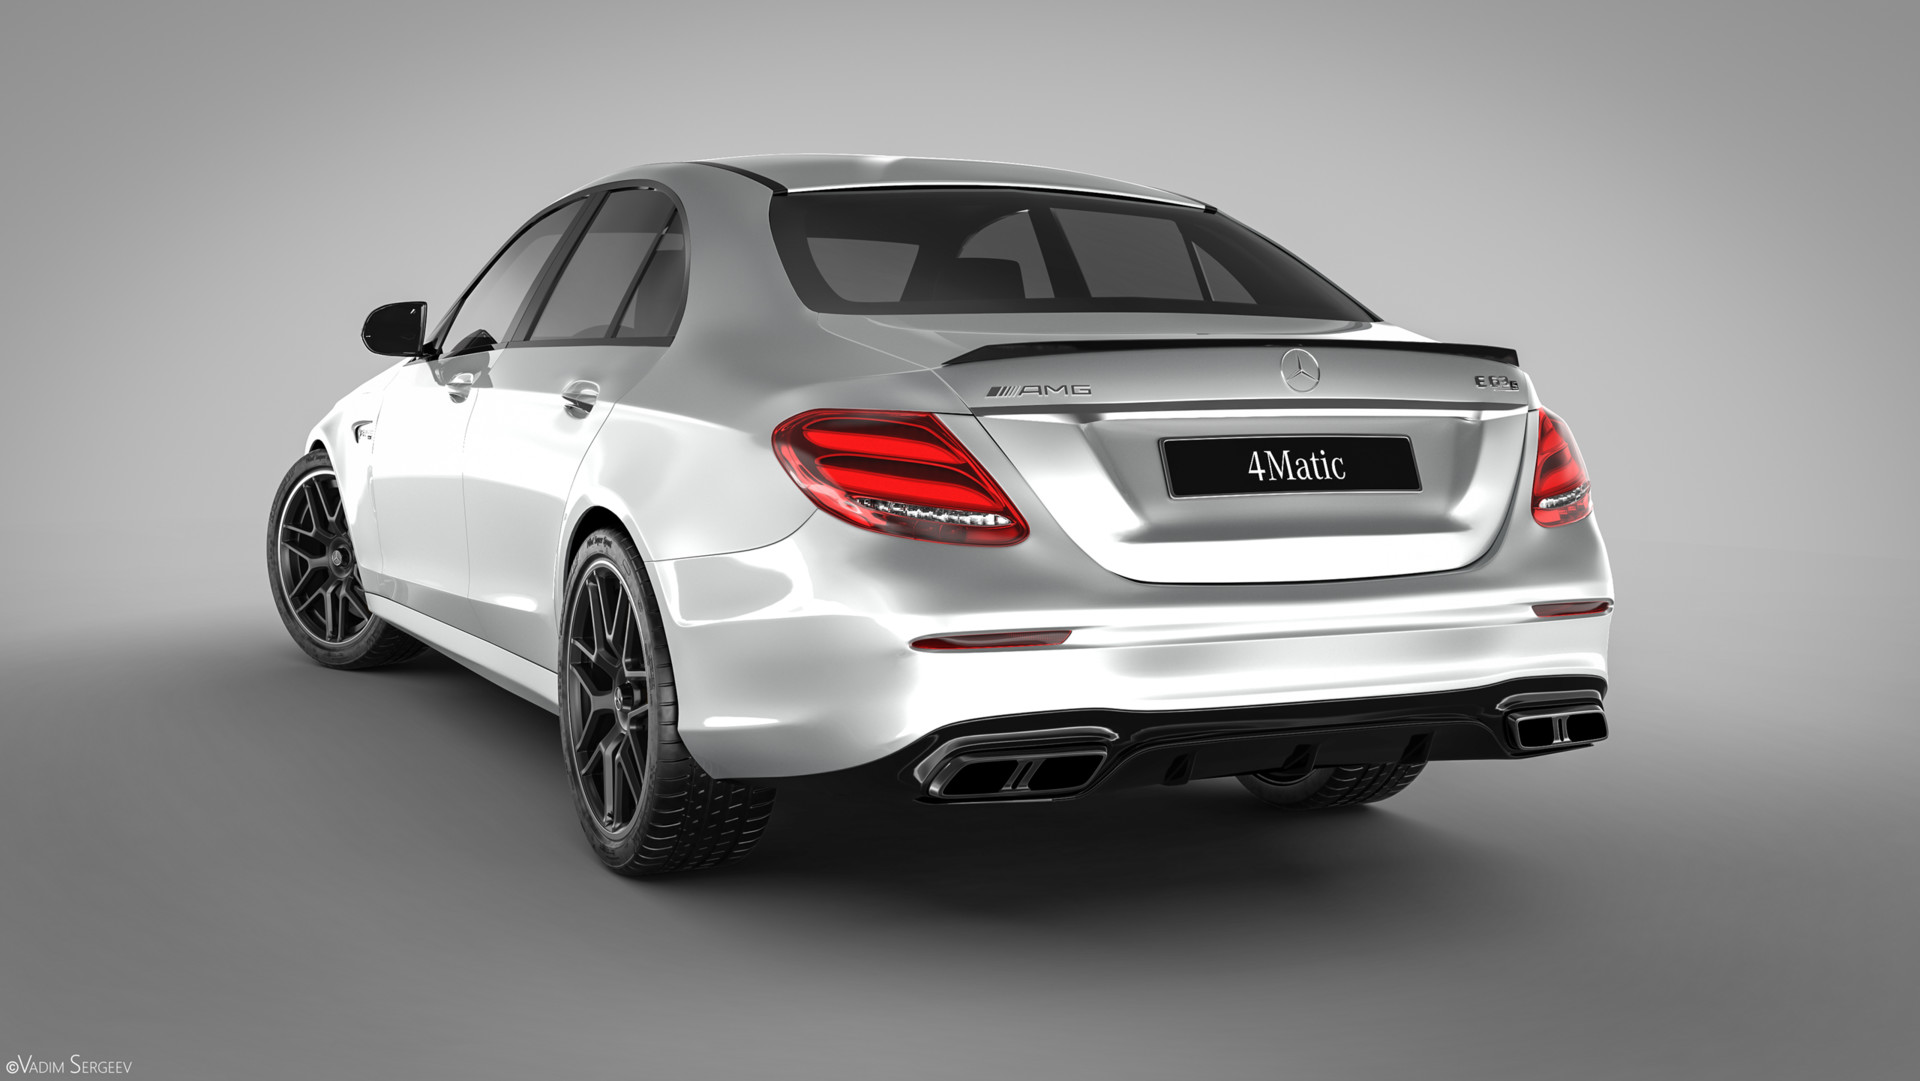 Mercedes benz e63 amg 2018 for Mercedes benz e 63 amg